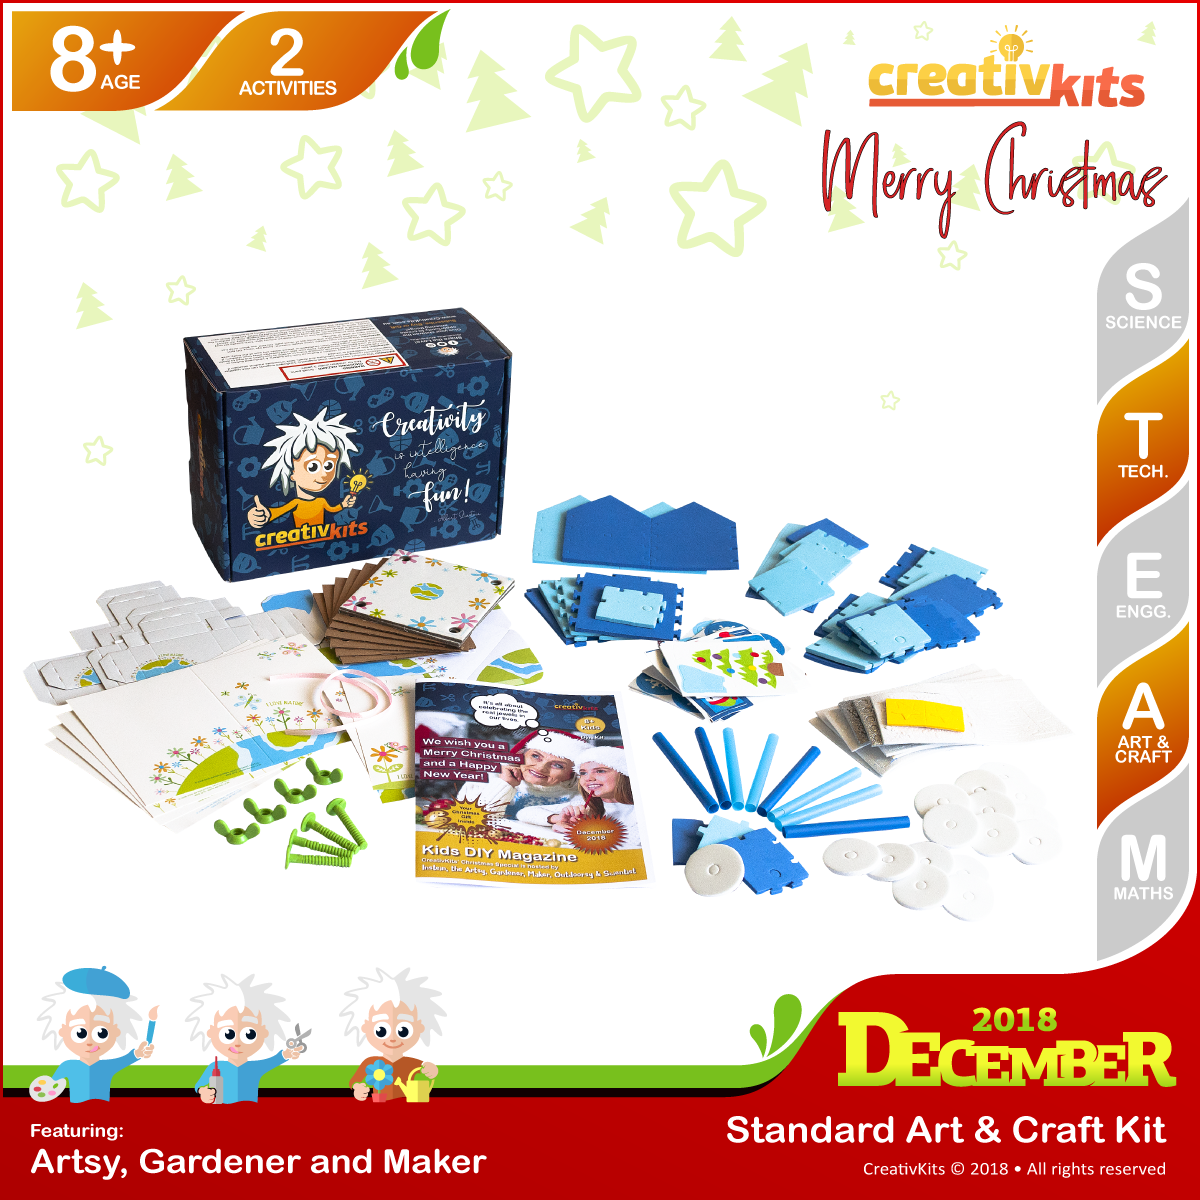 December Standard Art & Craft Kit • Age 8 plus • Creating Flower Art and Making Arctic Express Train